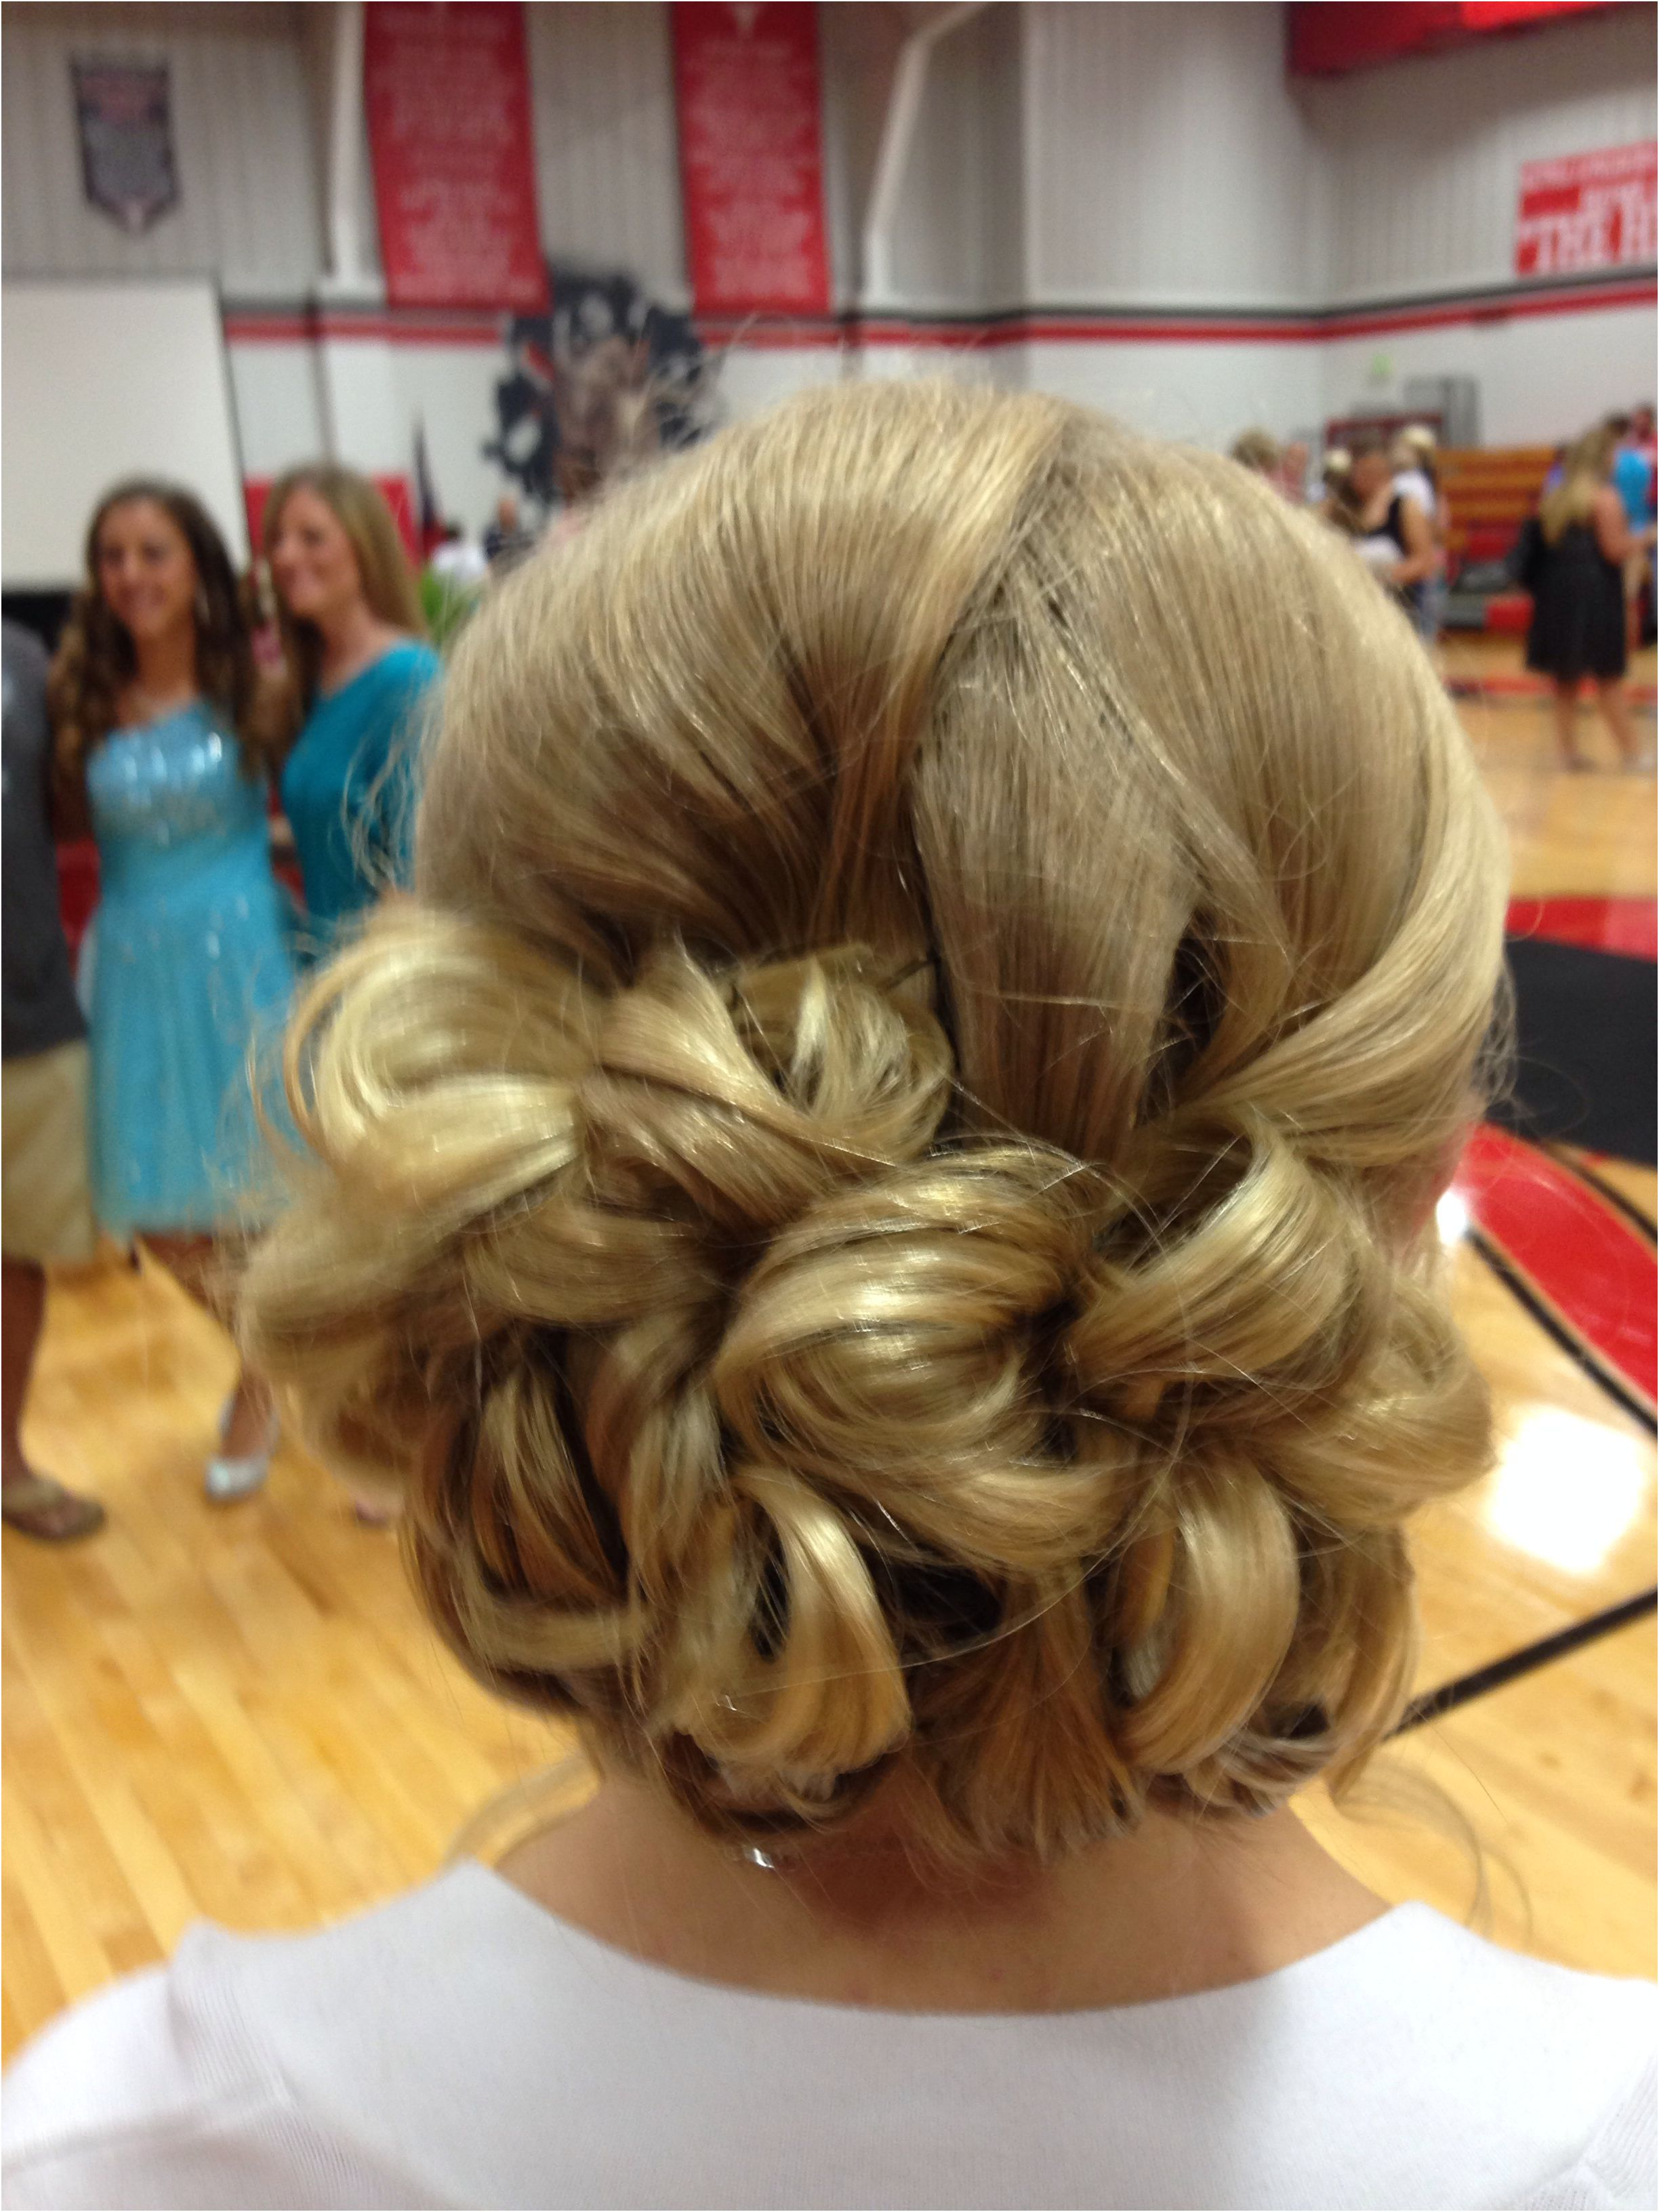 13 Animated 8th Grade Prom Hairstyles Pictures Graduation Hairstyles 8th Grade Graduation Graduation Hairstyles 8th Grade